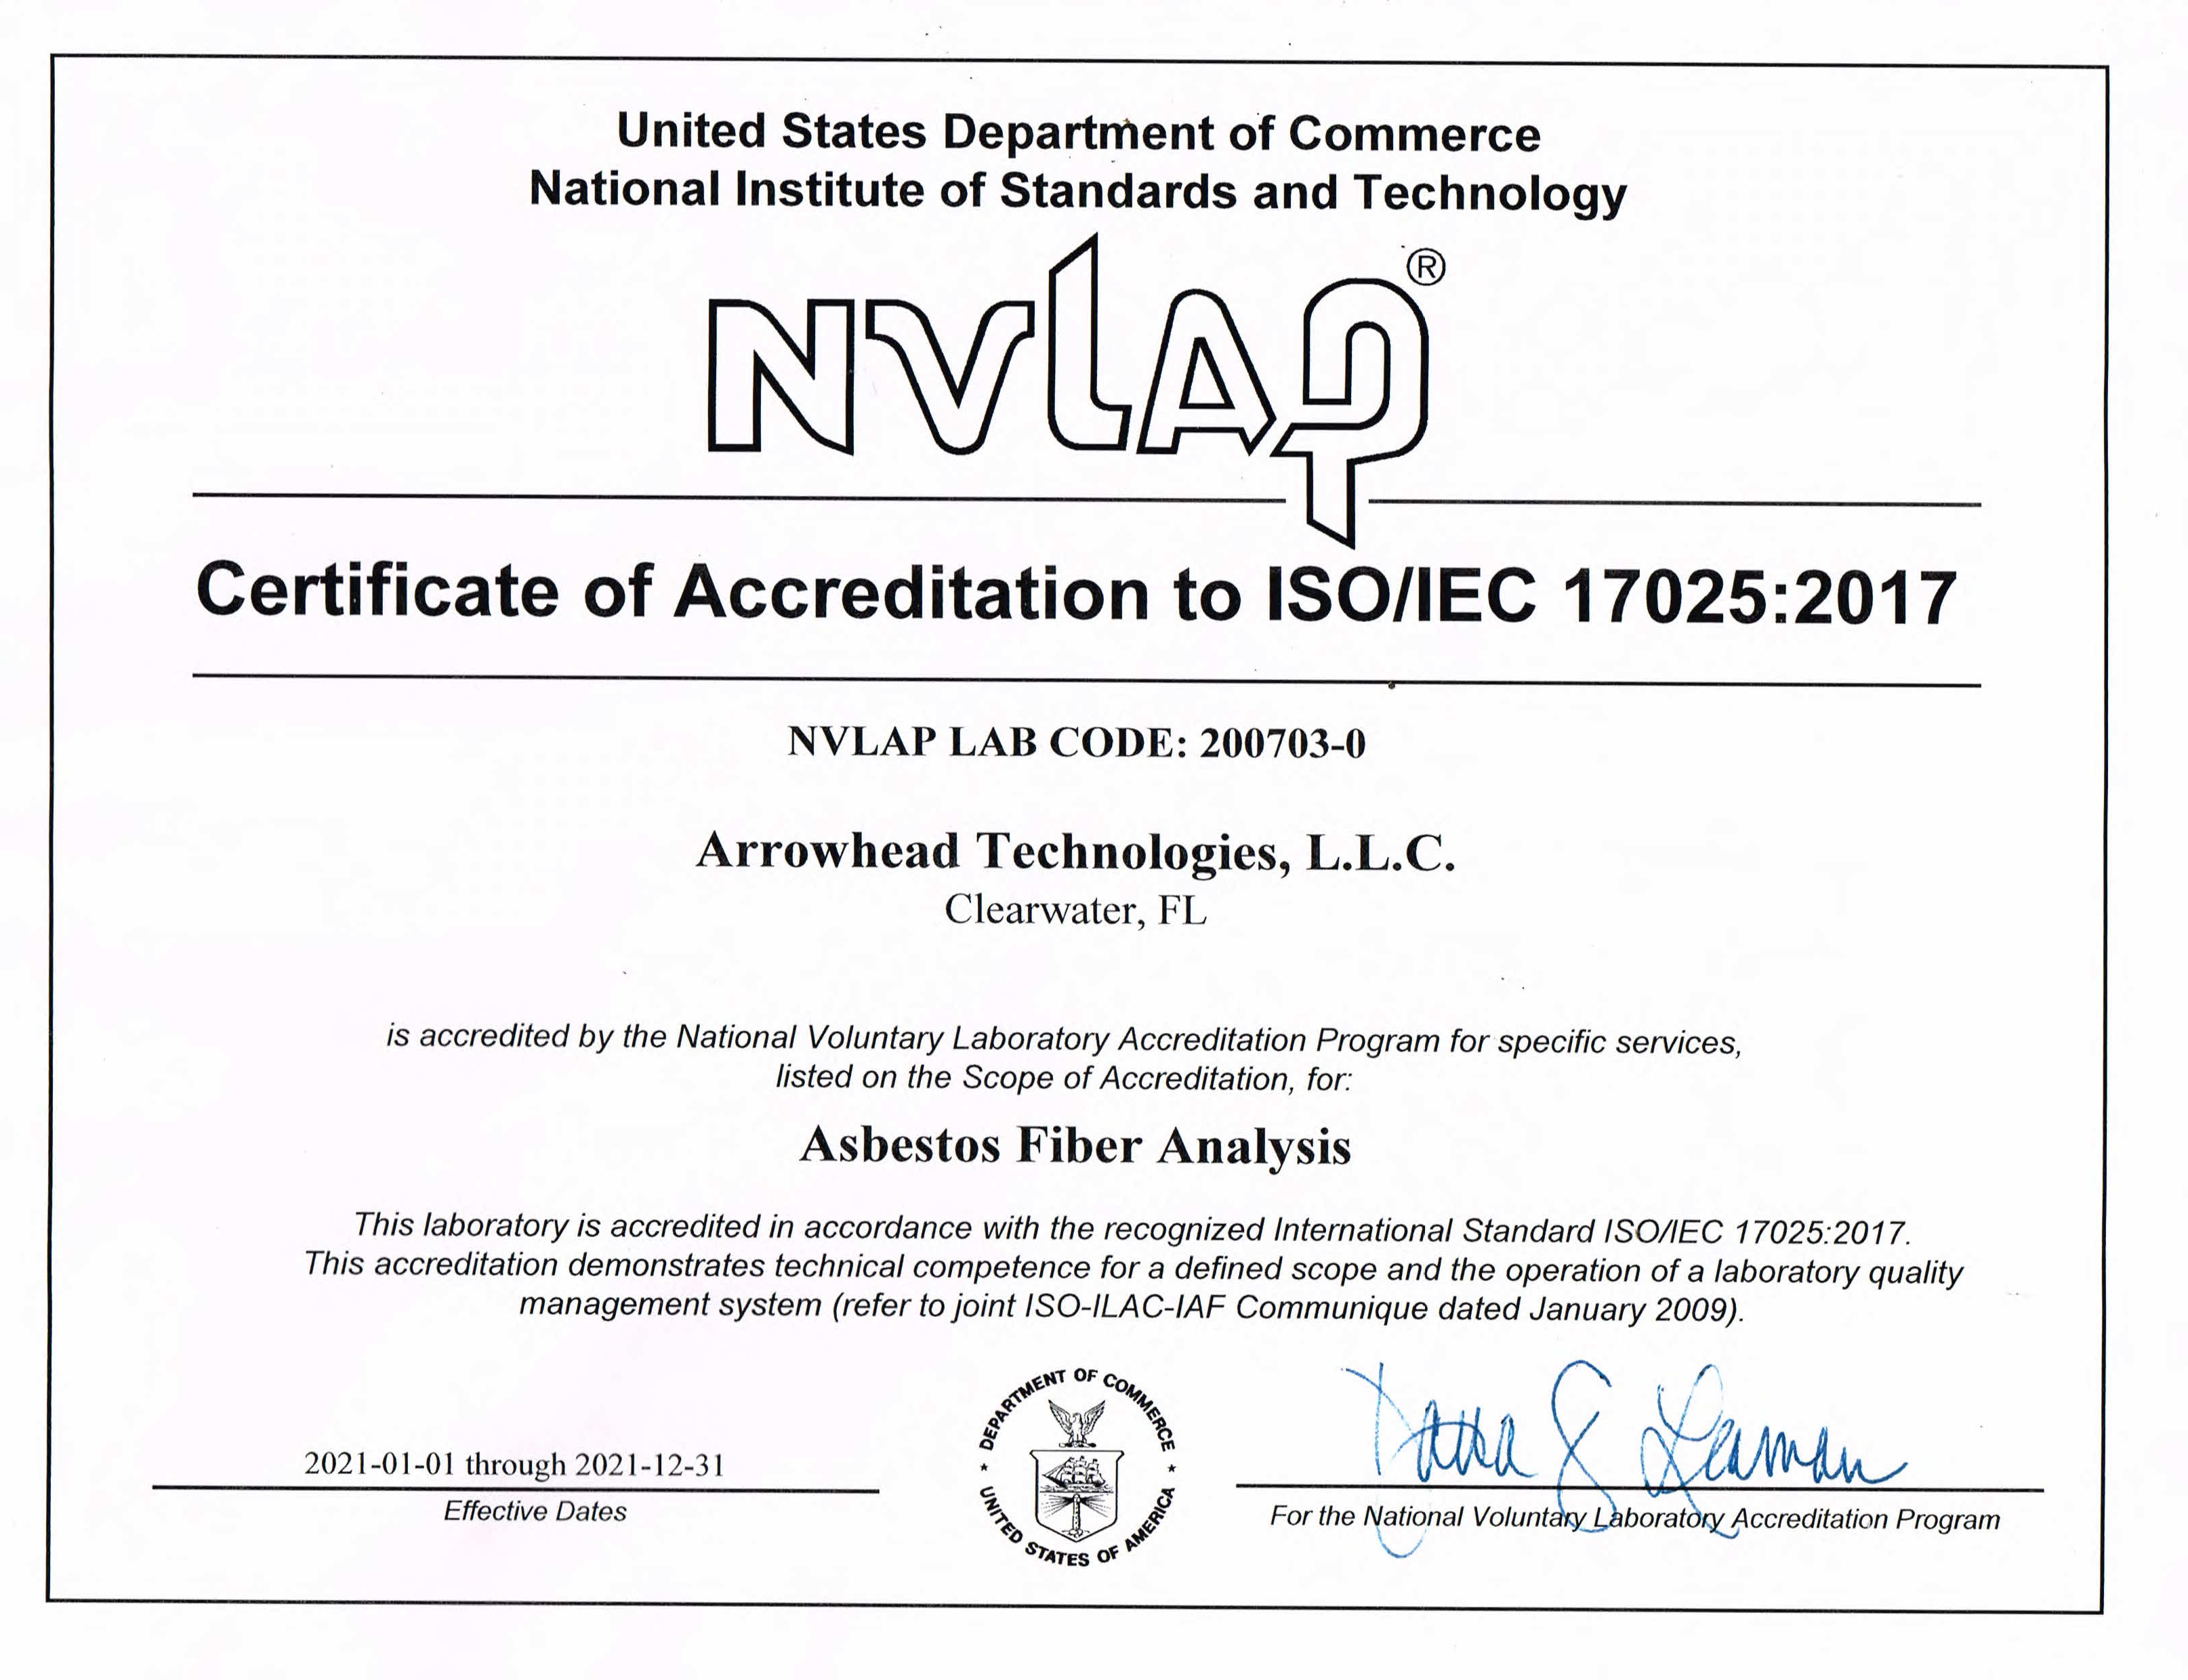 NVLAP Certificate of Accreditation